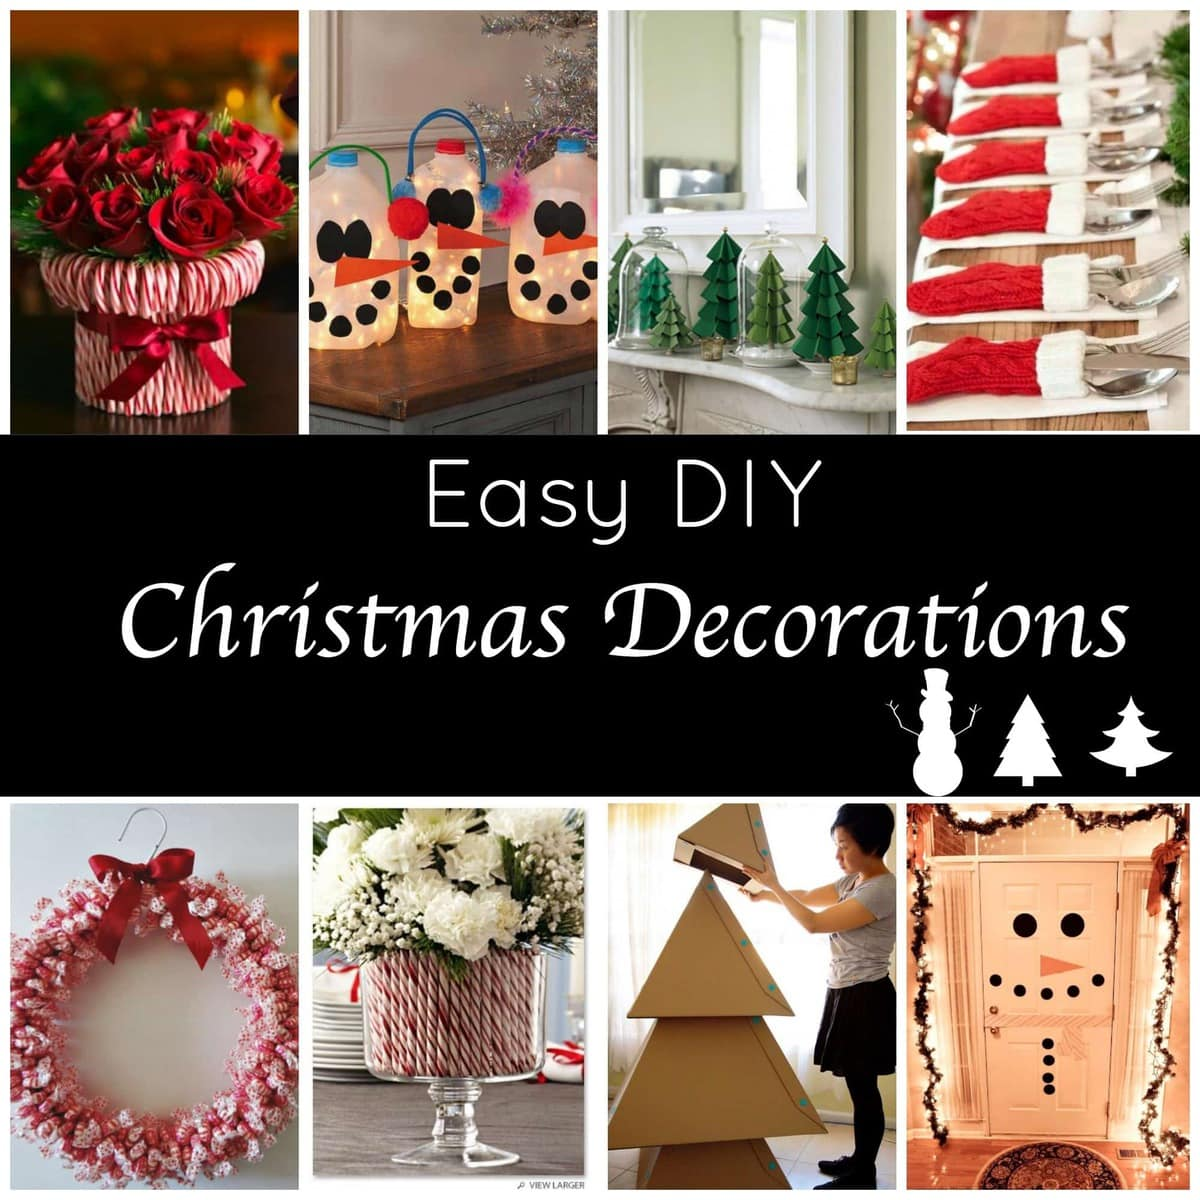 25 Cute Diy Home Decor Ideas: Cute And Easy DIY Holiday Decorations For A Festive Home